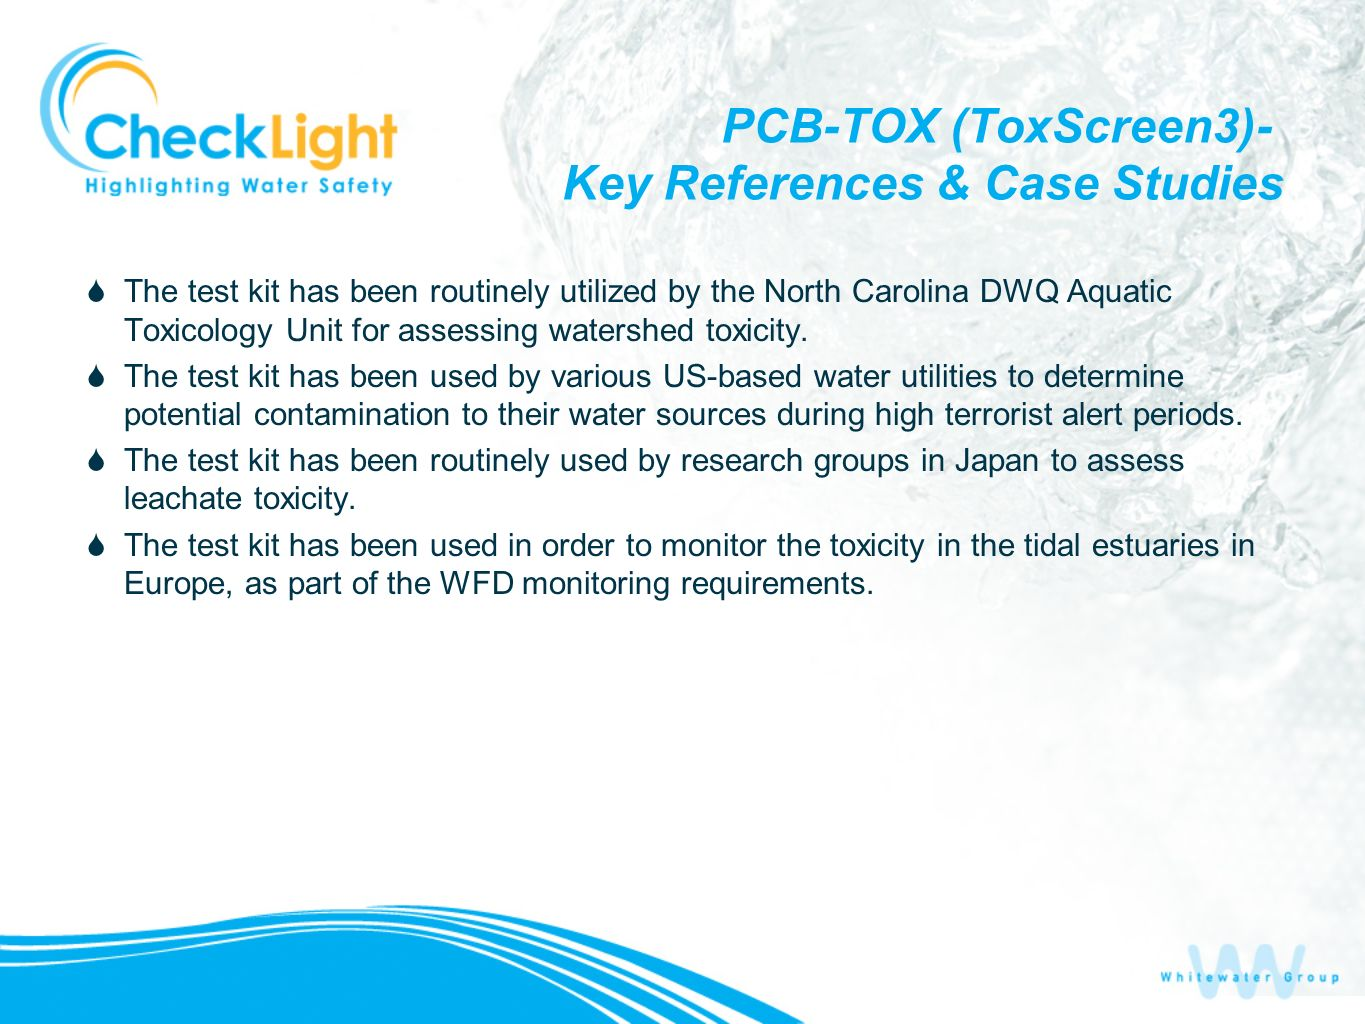 PCB-TOX (ToxScreen3)- Key References & Case Studies